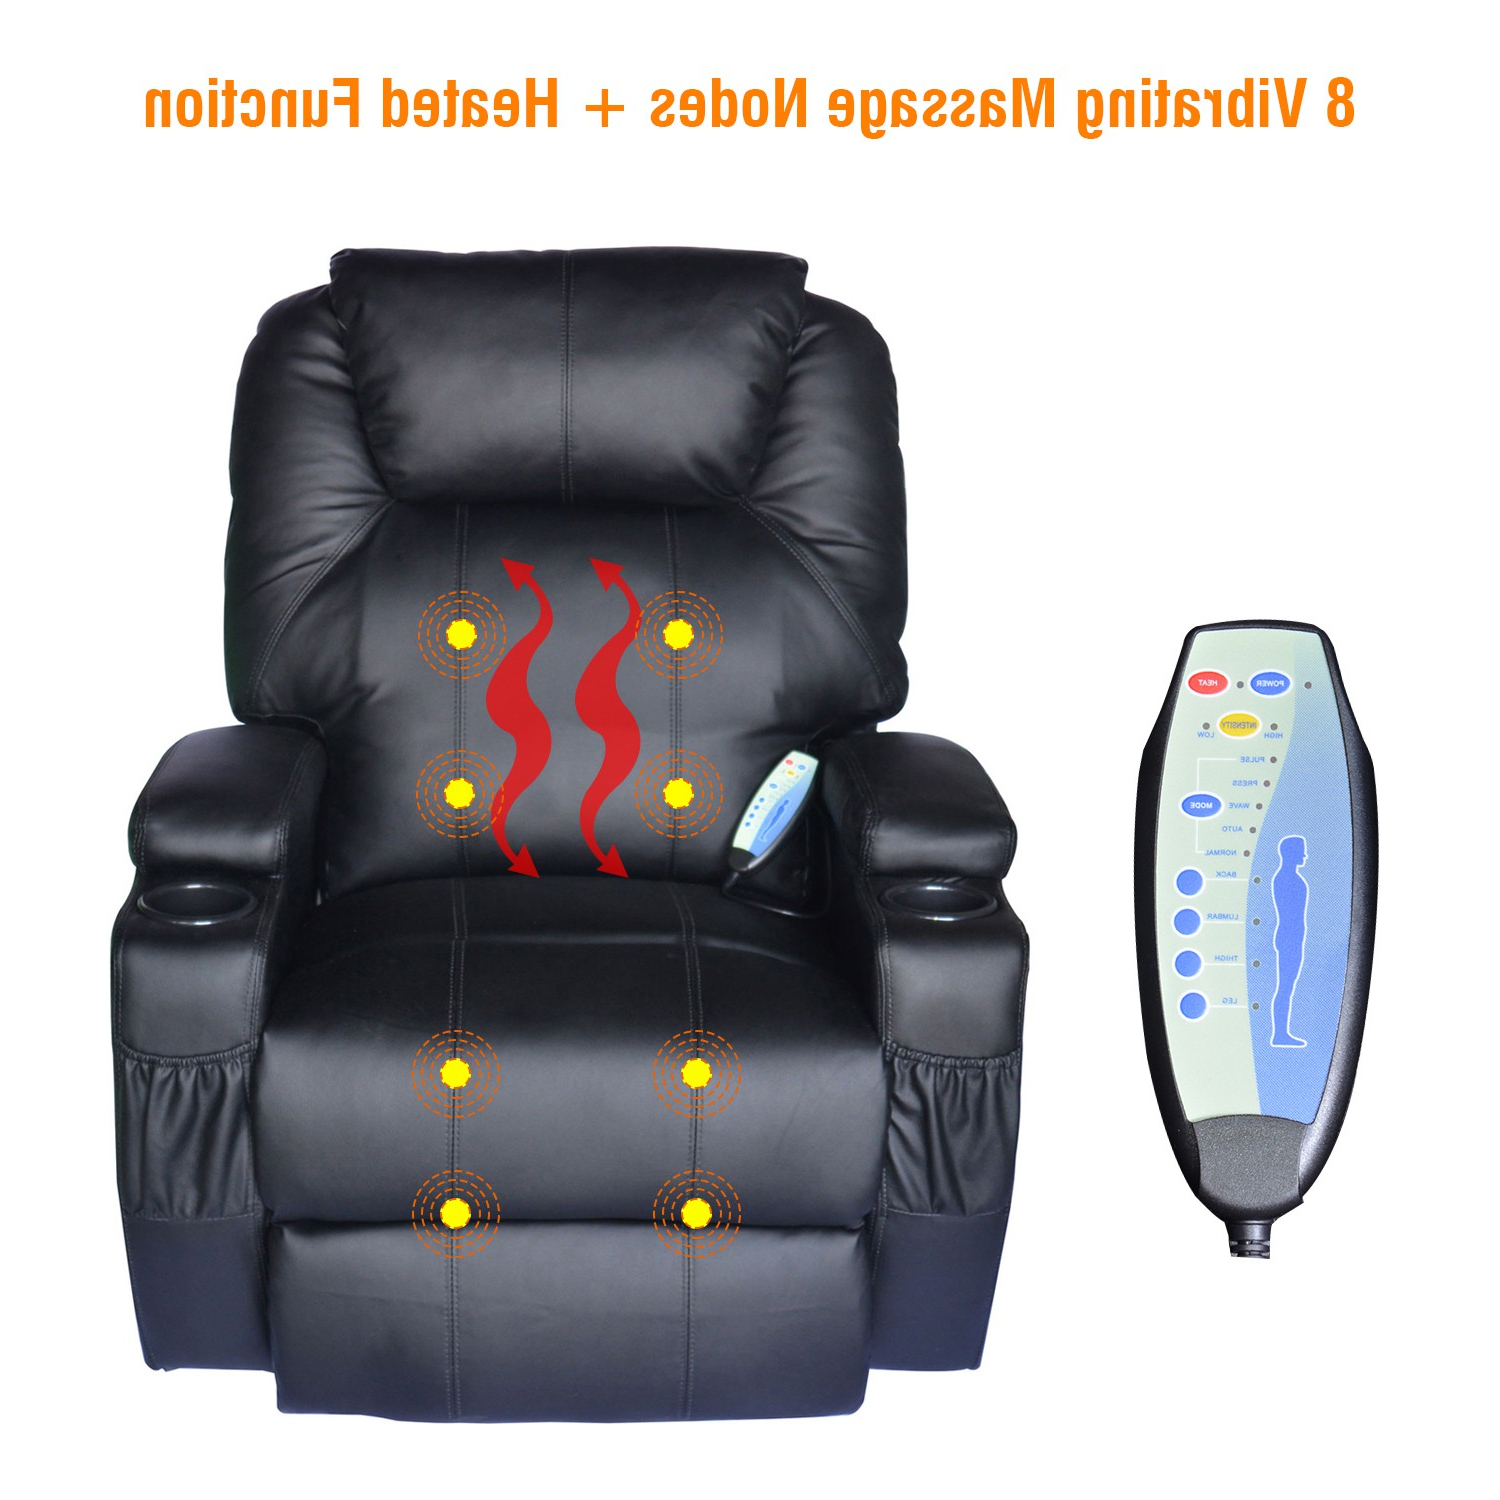 2018 Foot Massage Sofa Chairs With Regard To Deluxe Electric Heated Massage Sofa Adjustable Reclining Chair (View 20 of 20)